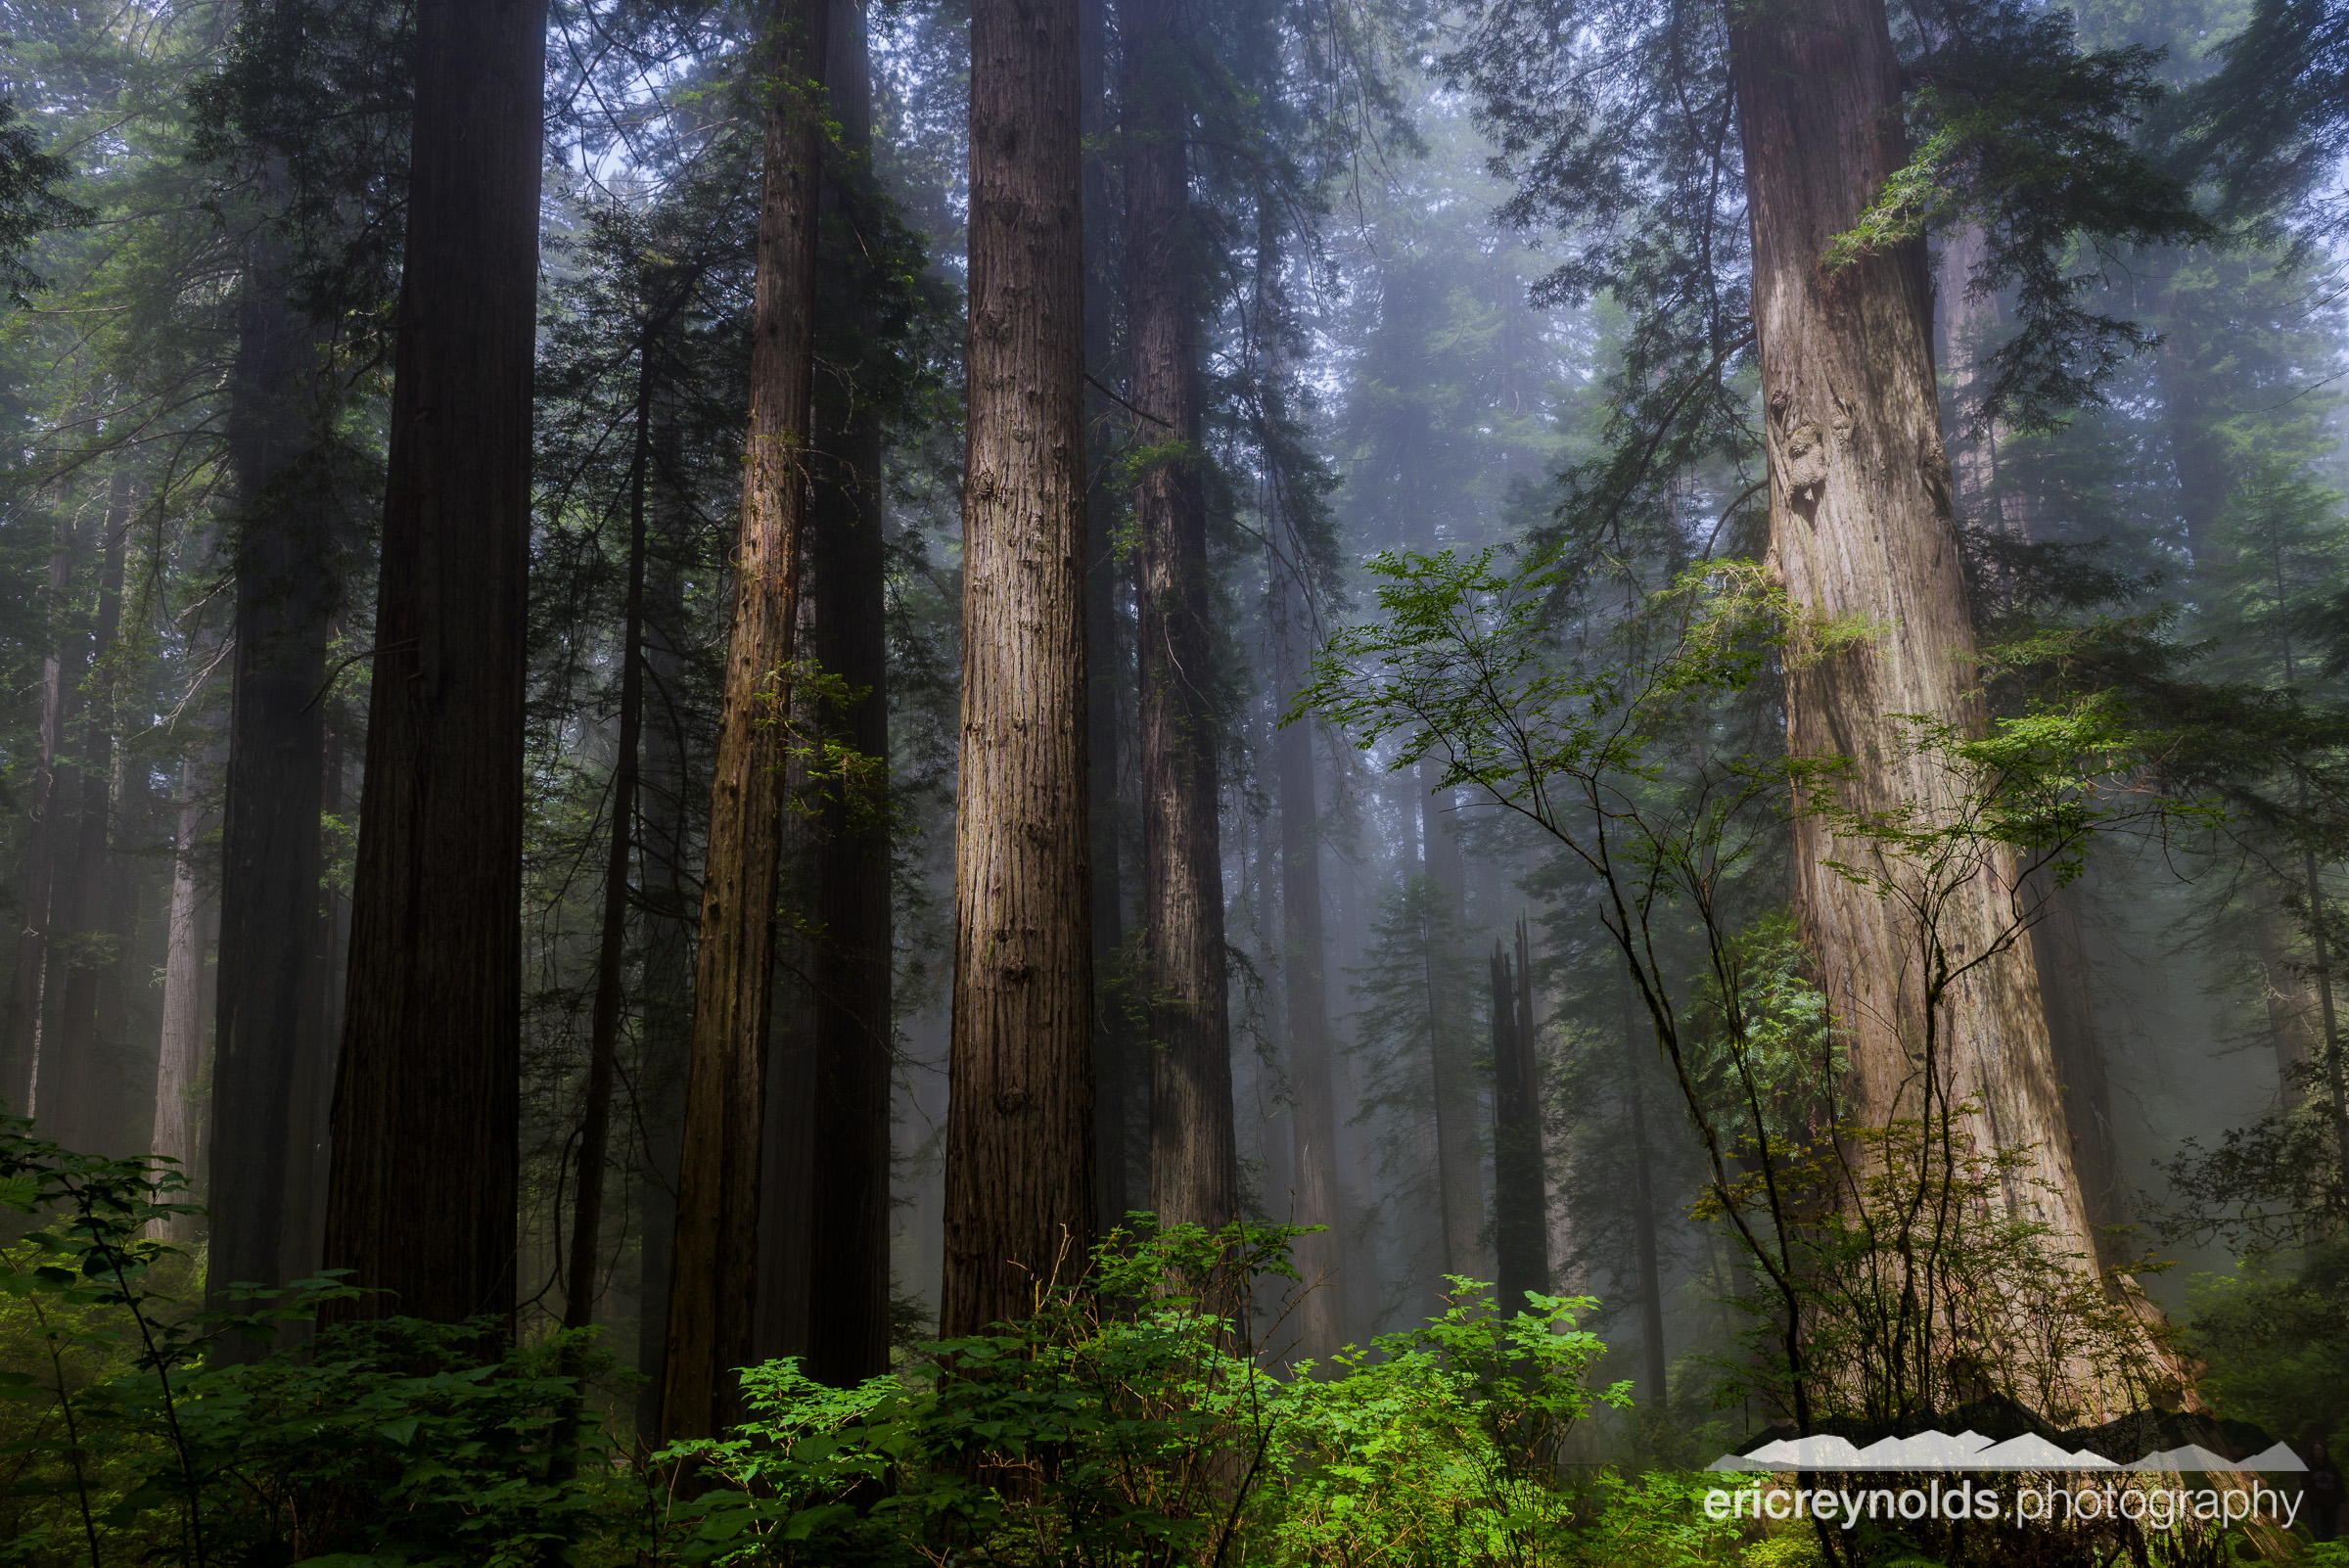 Giants of the Redwoods by Eric Reynolds - Landscape Photographer